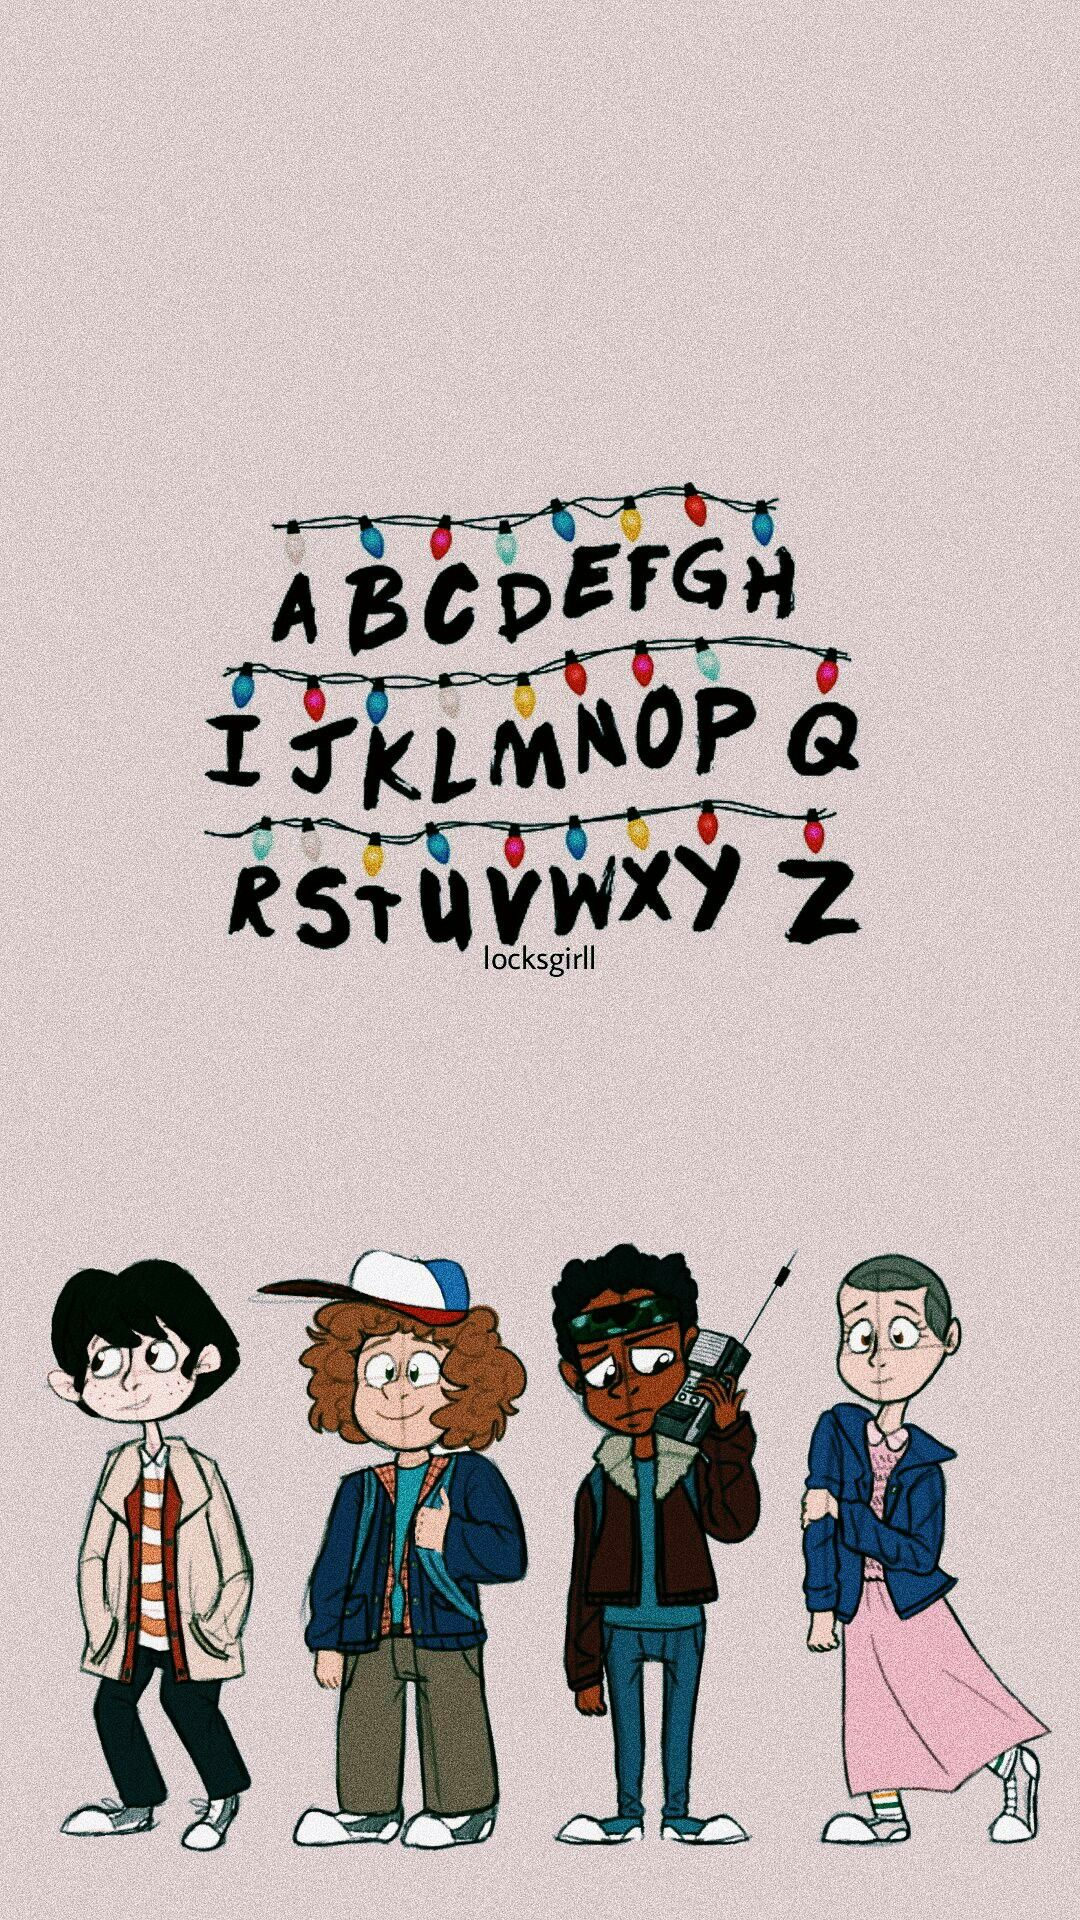 Pin de chiara en stranger things pinterest fondos for Fondo de pantalla stranger things